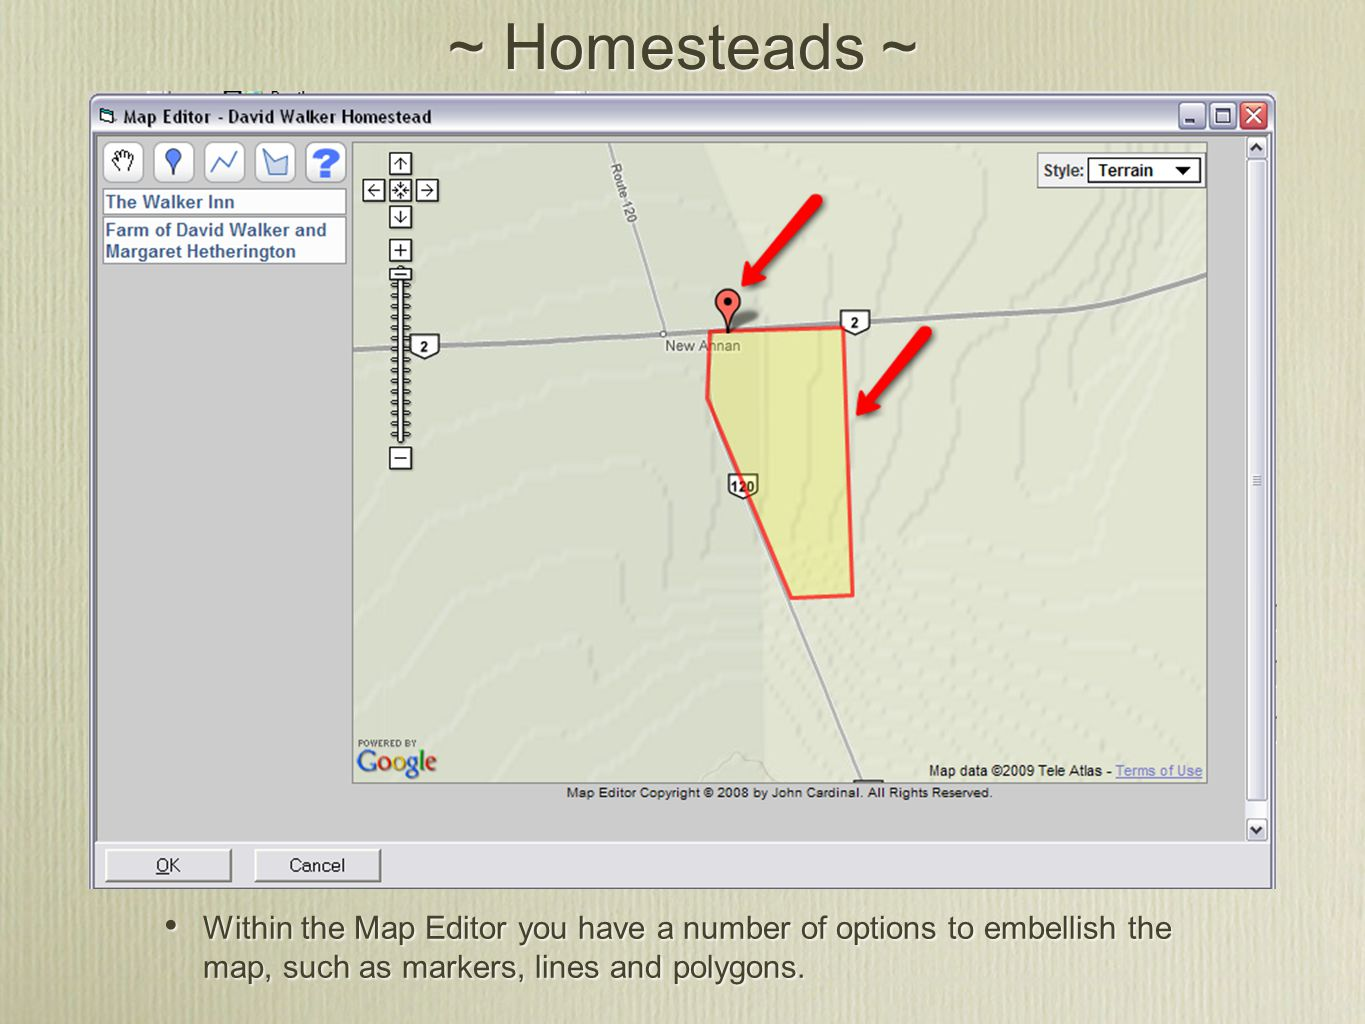 ~ Homesteads ~ Within the Map Editor you have a number of options to embellish the map, such as markers, lines and polygons.